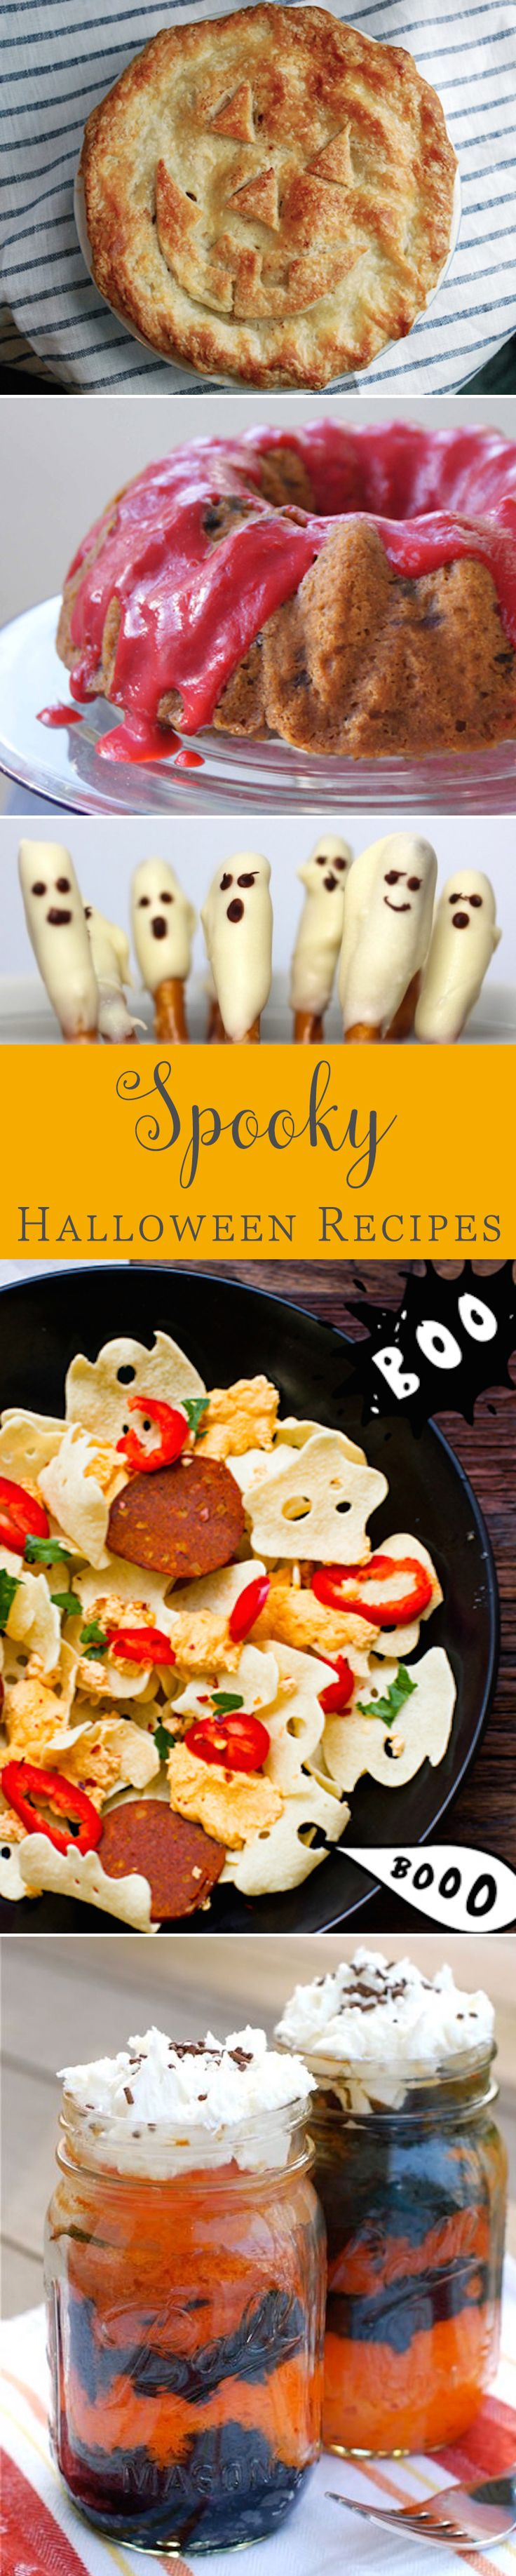 186 best Halloween Crafts and Recipes images on Pinterest